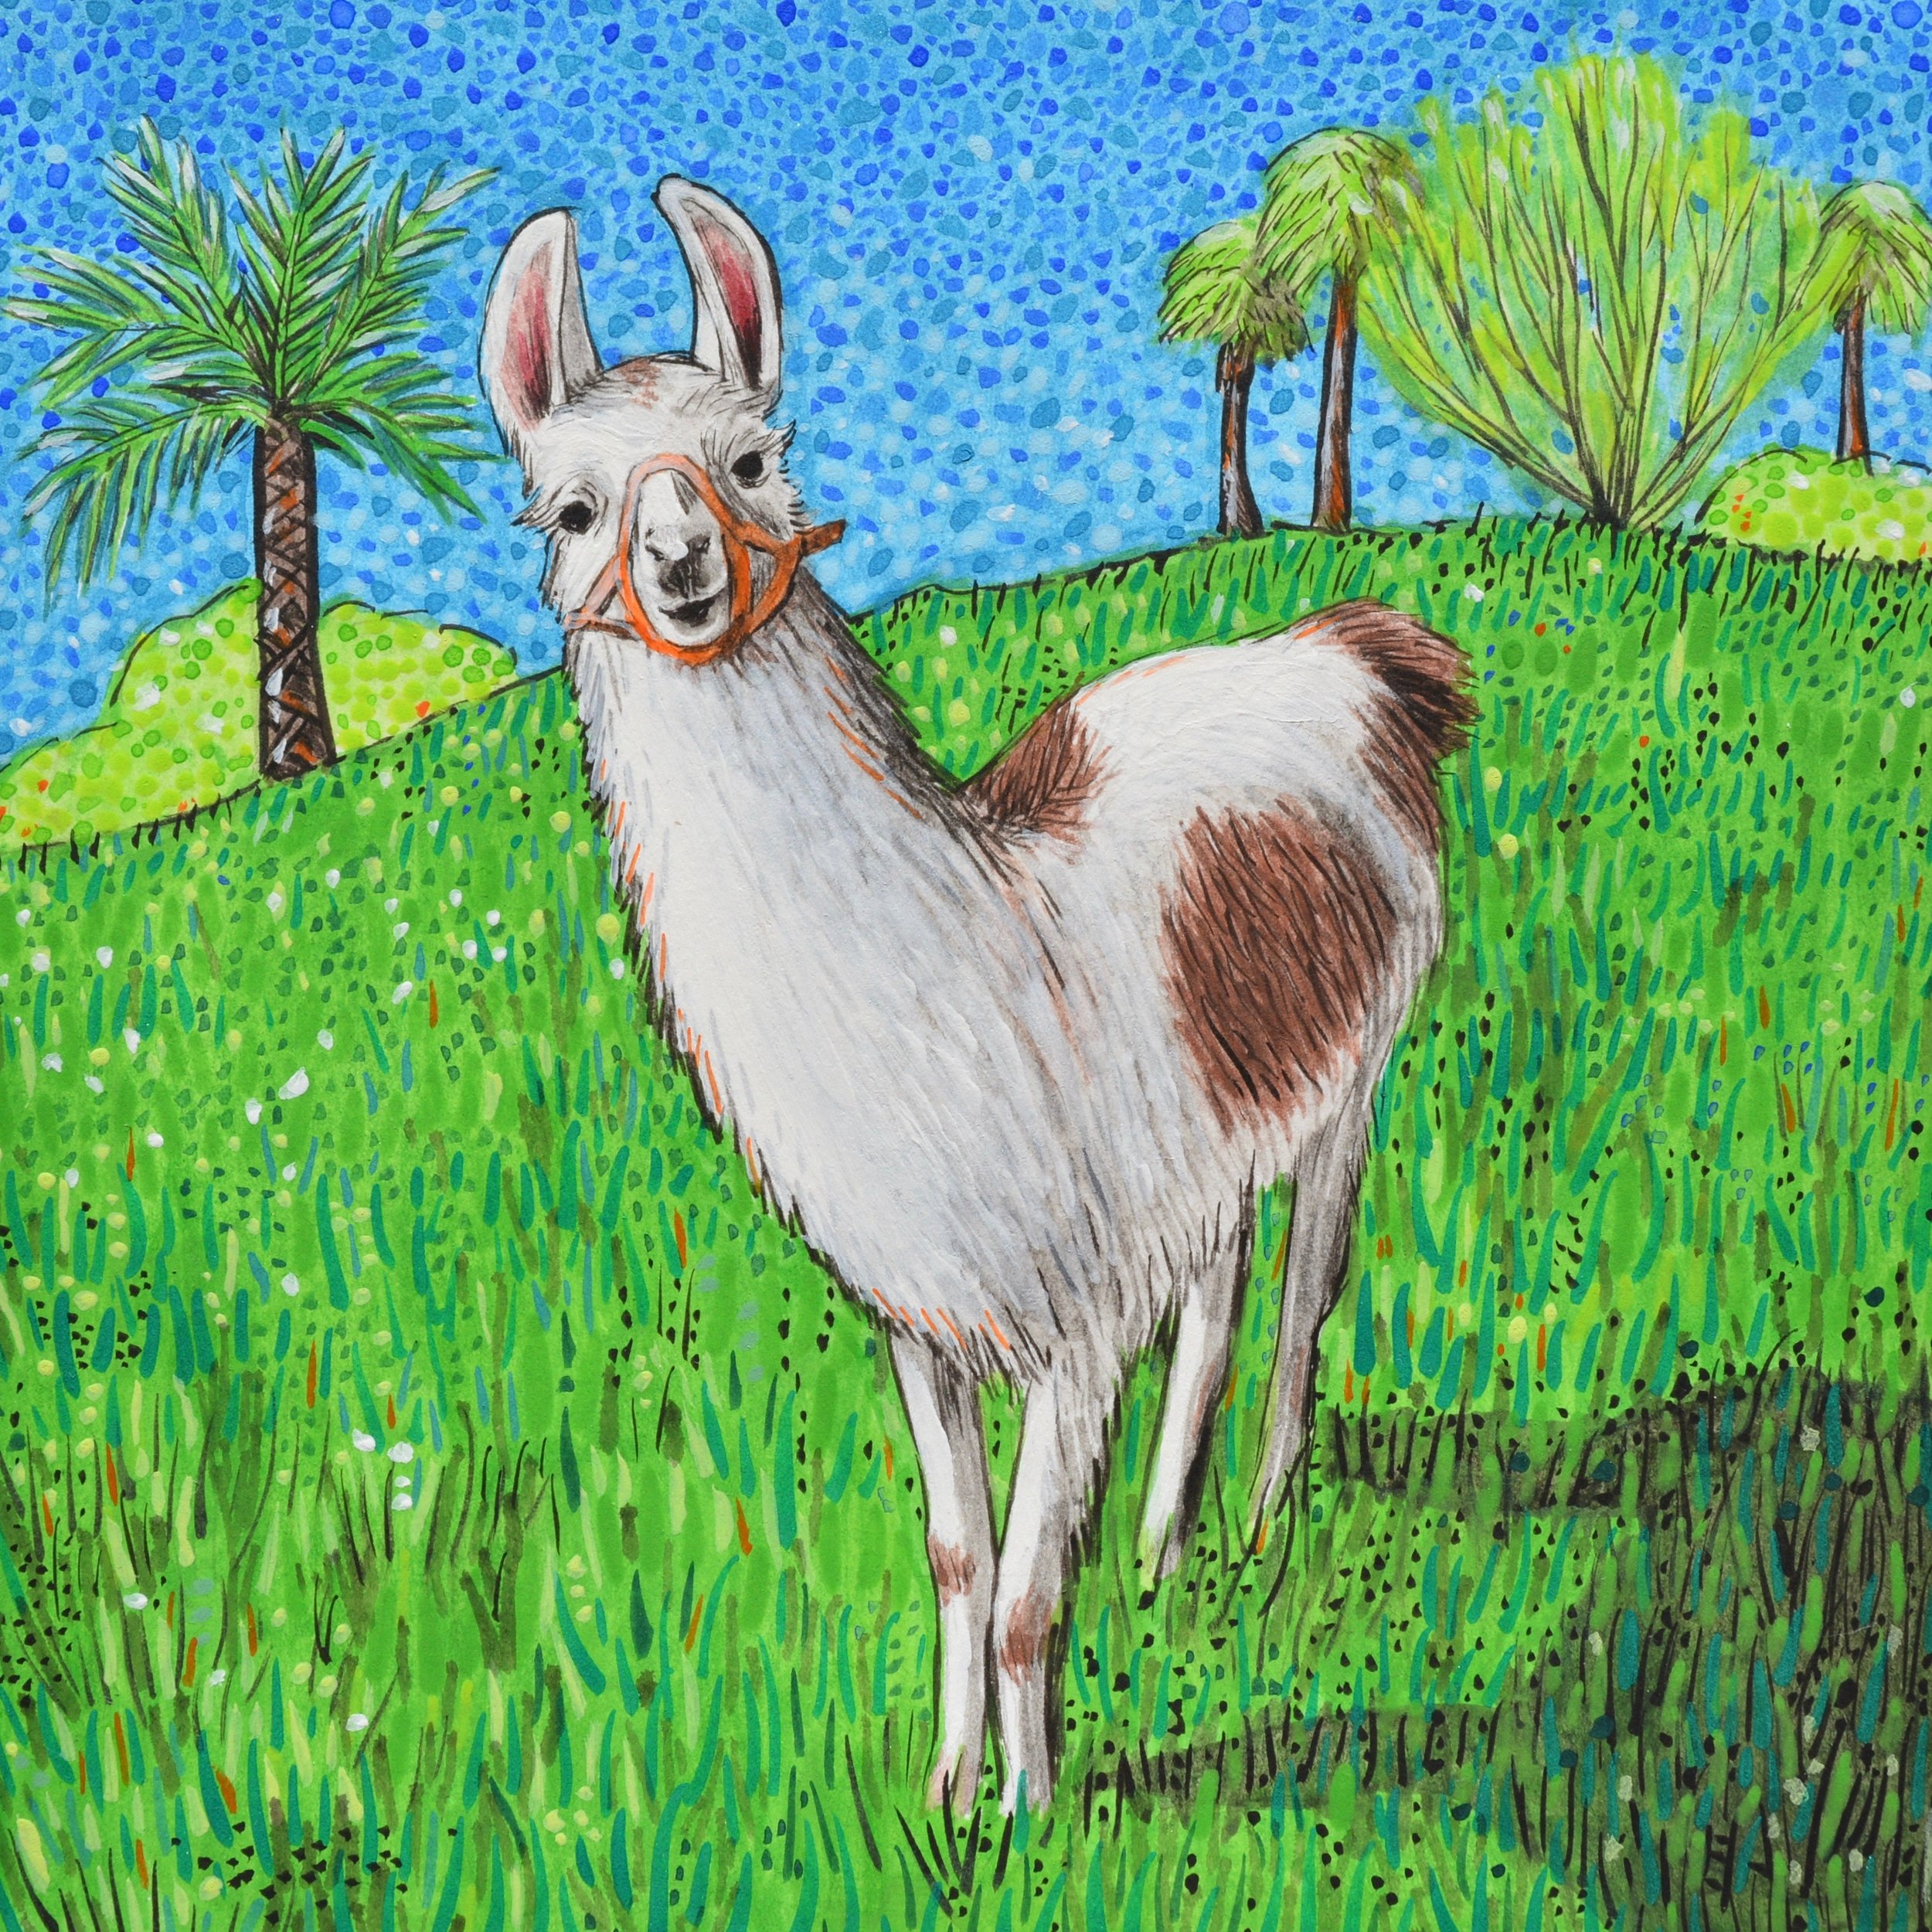 Painting of Dolly Llama I created for Tricia in gratitude for her hospitality